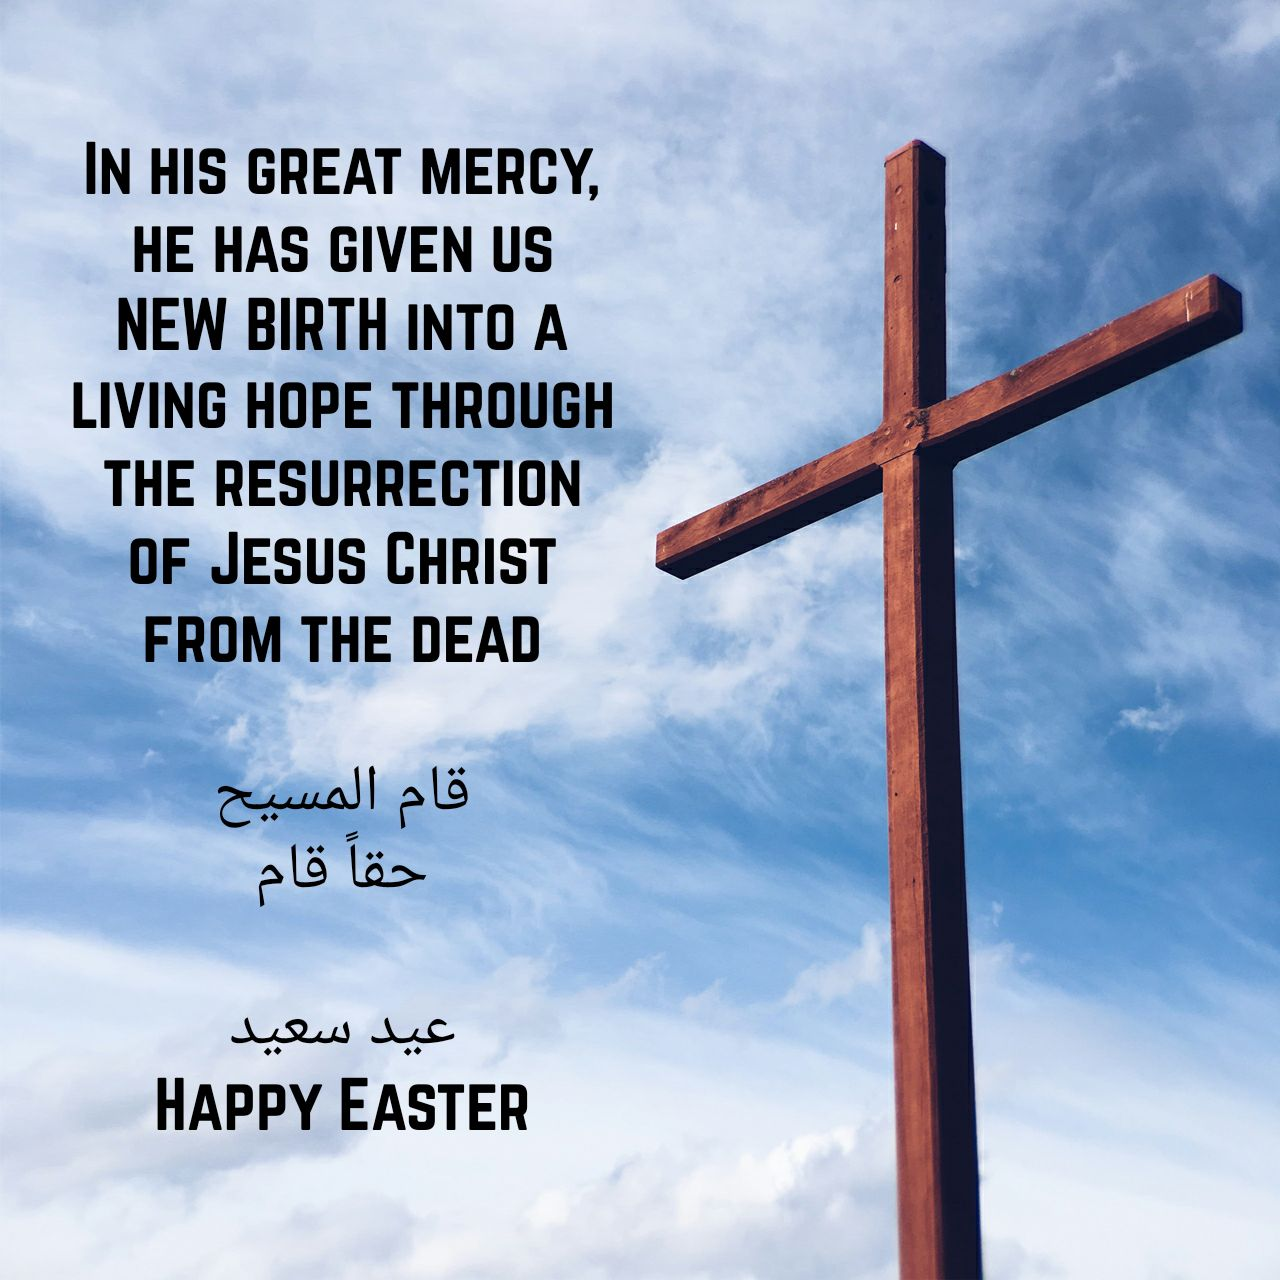 Happy Easter عيد سعيد